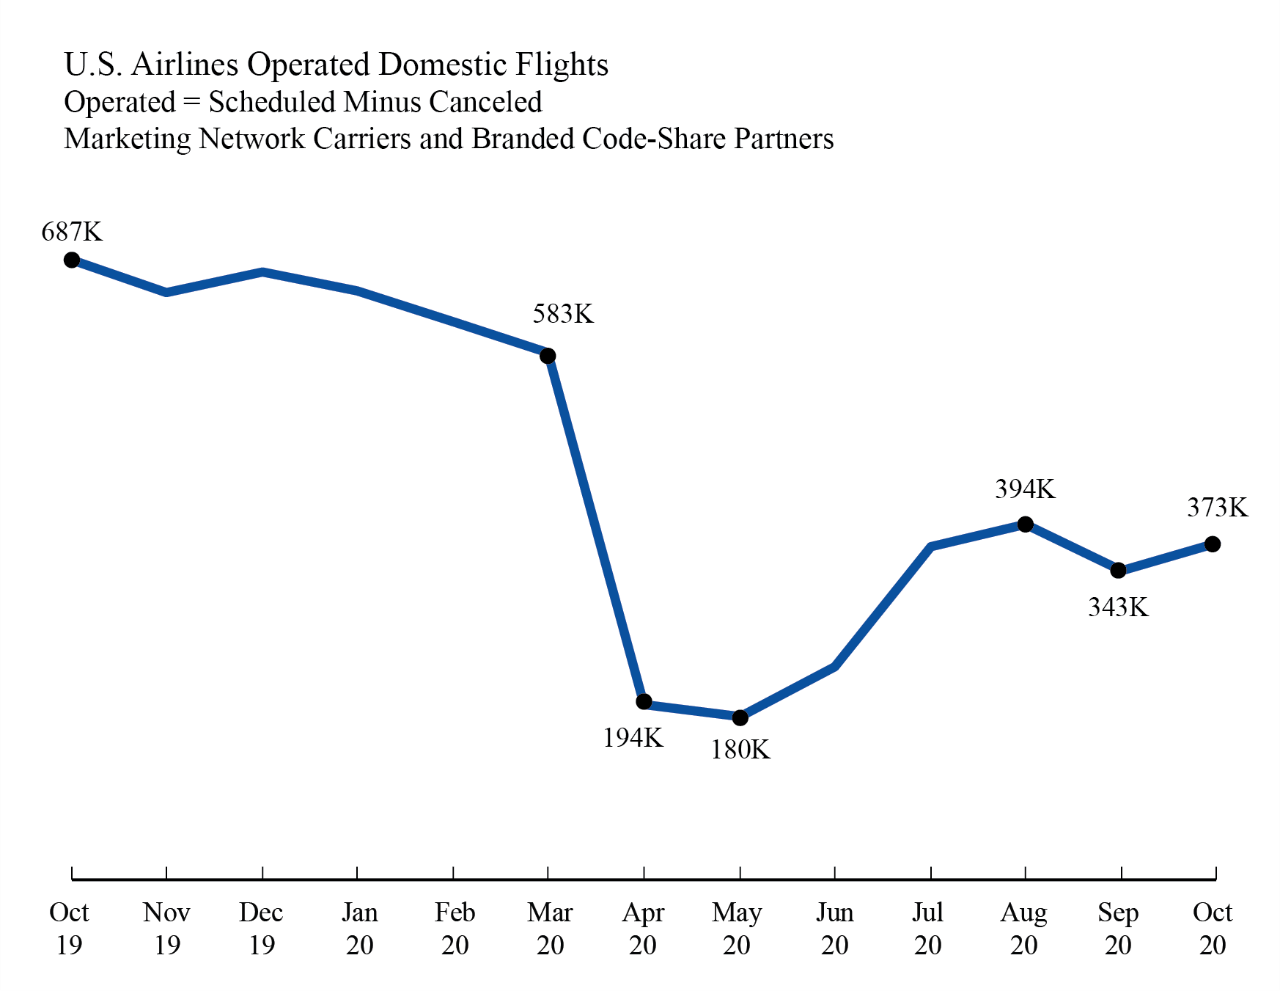 U.S Airlines Operated Domestic Flights chart